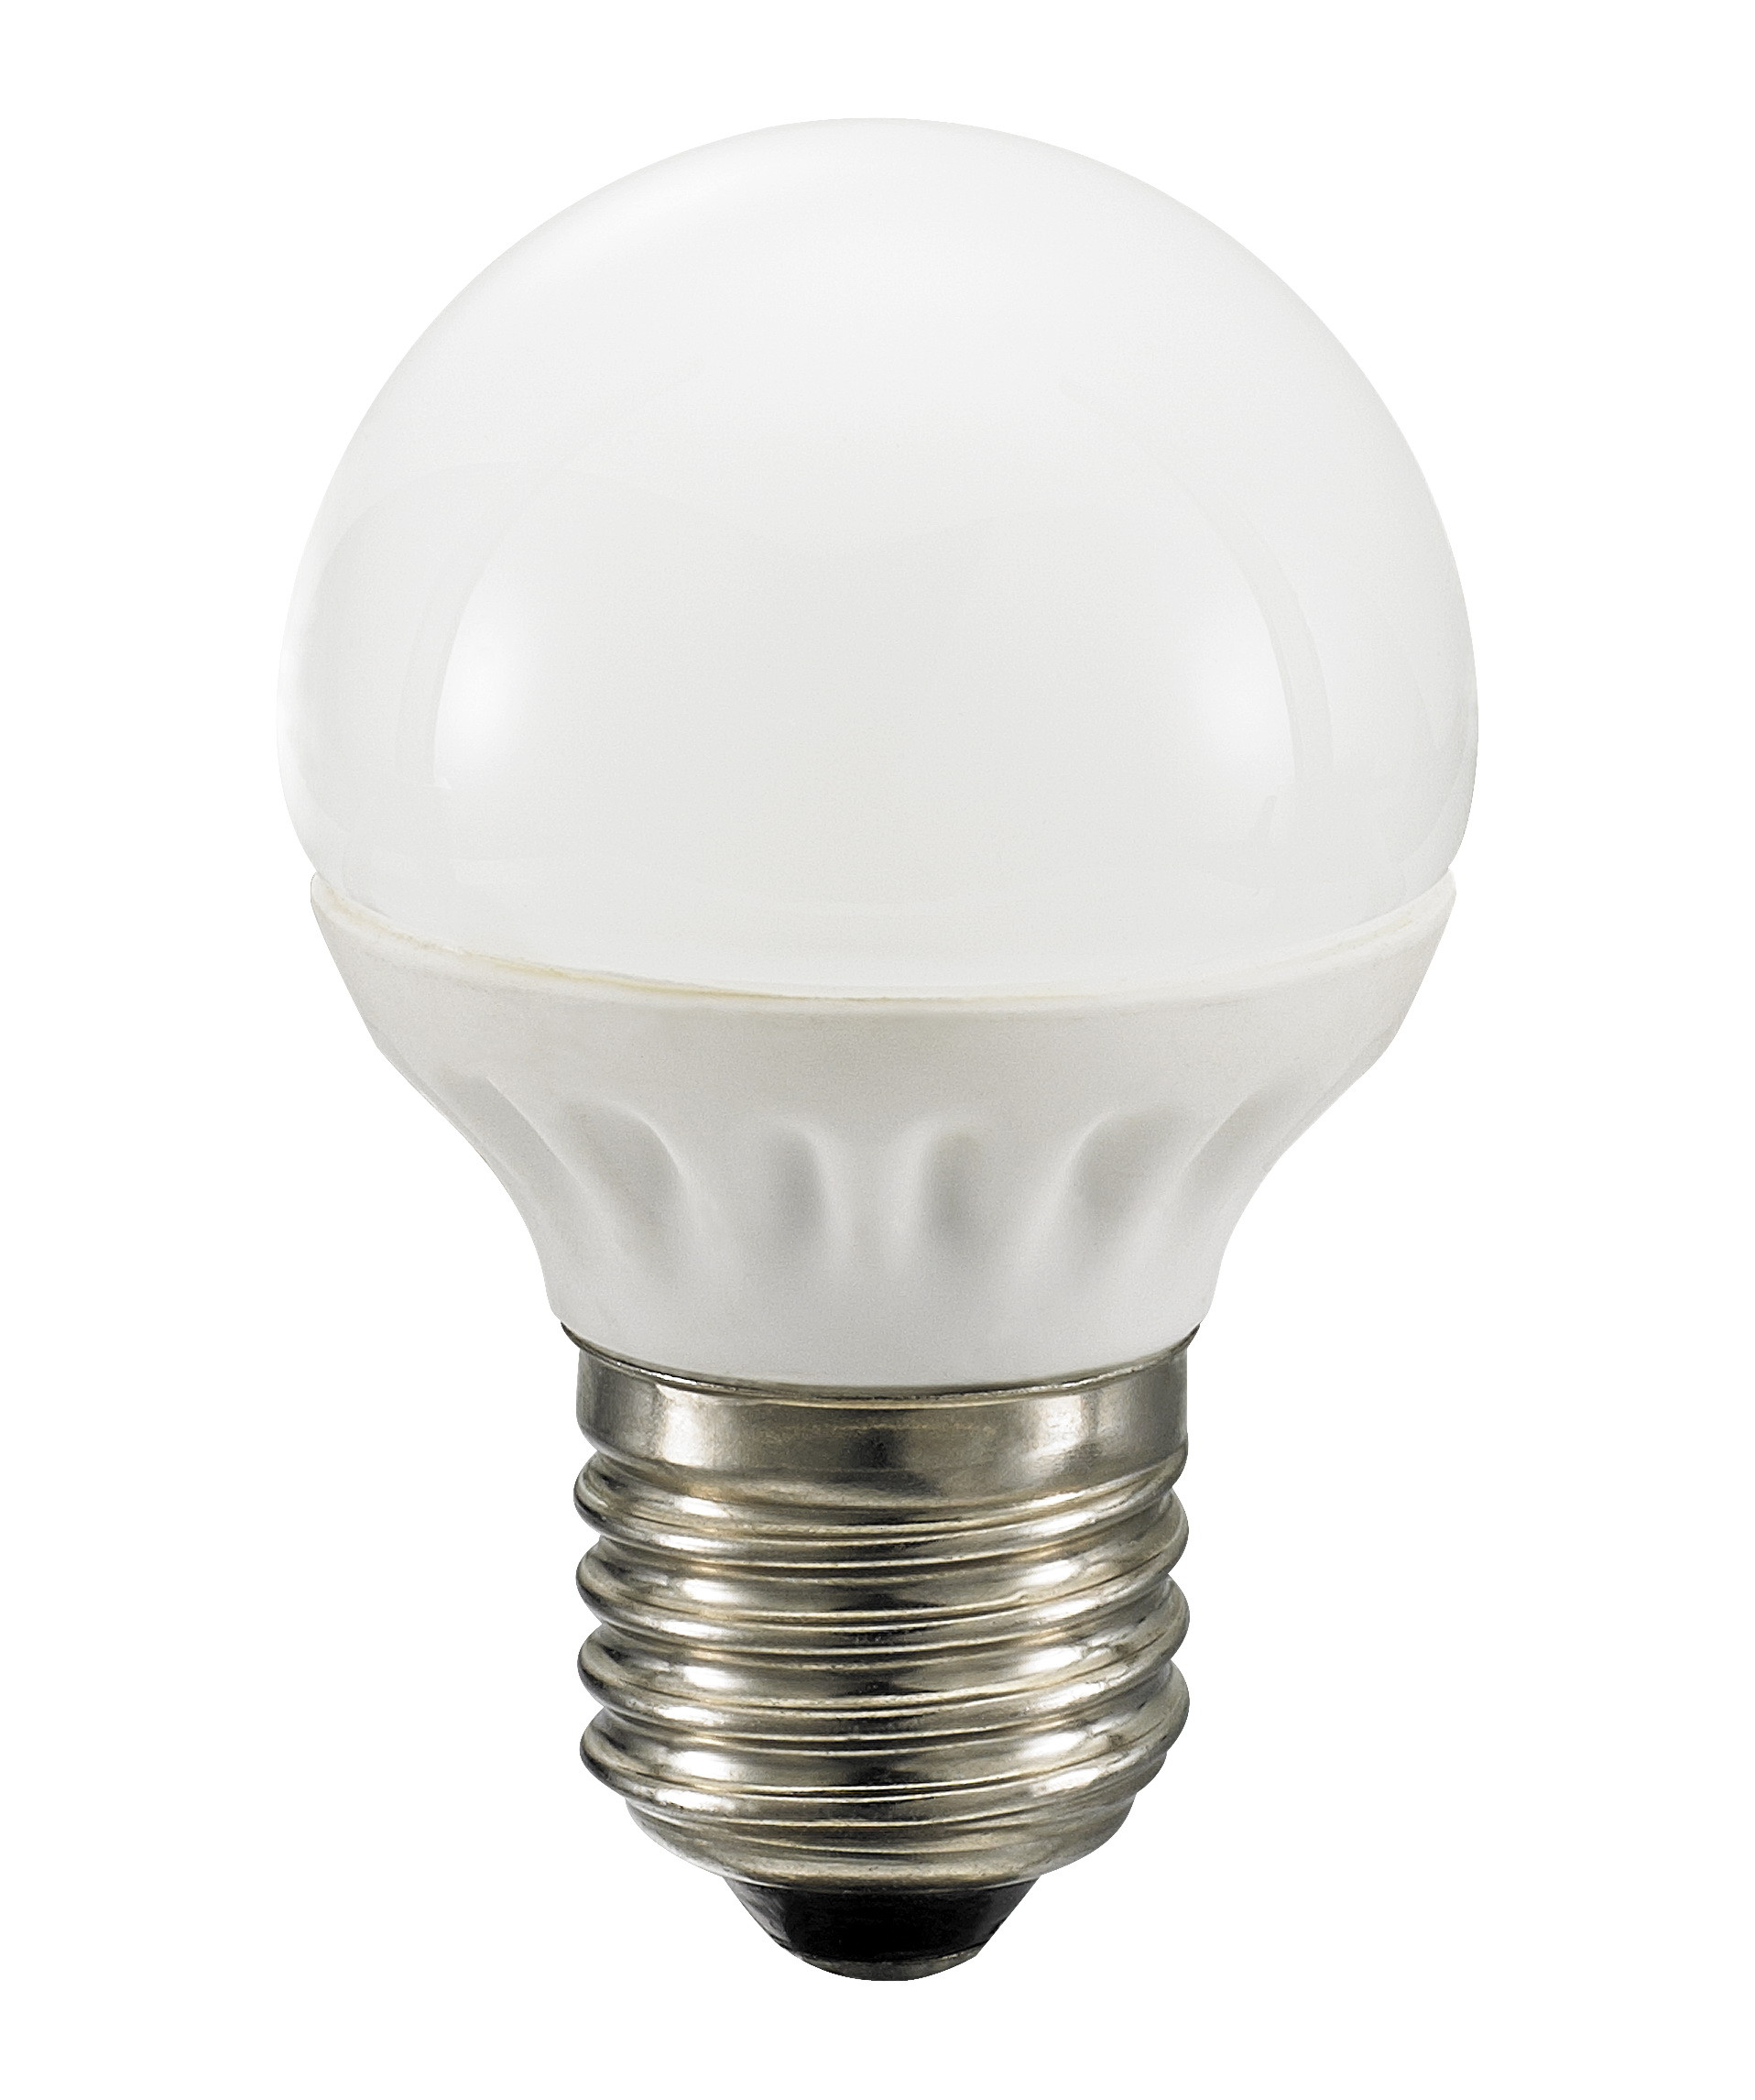 Image of   Civilight LED pære - E27 - Ra 97 - 4 watt (25W)